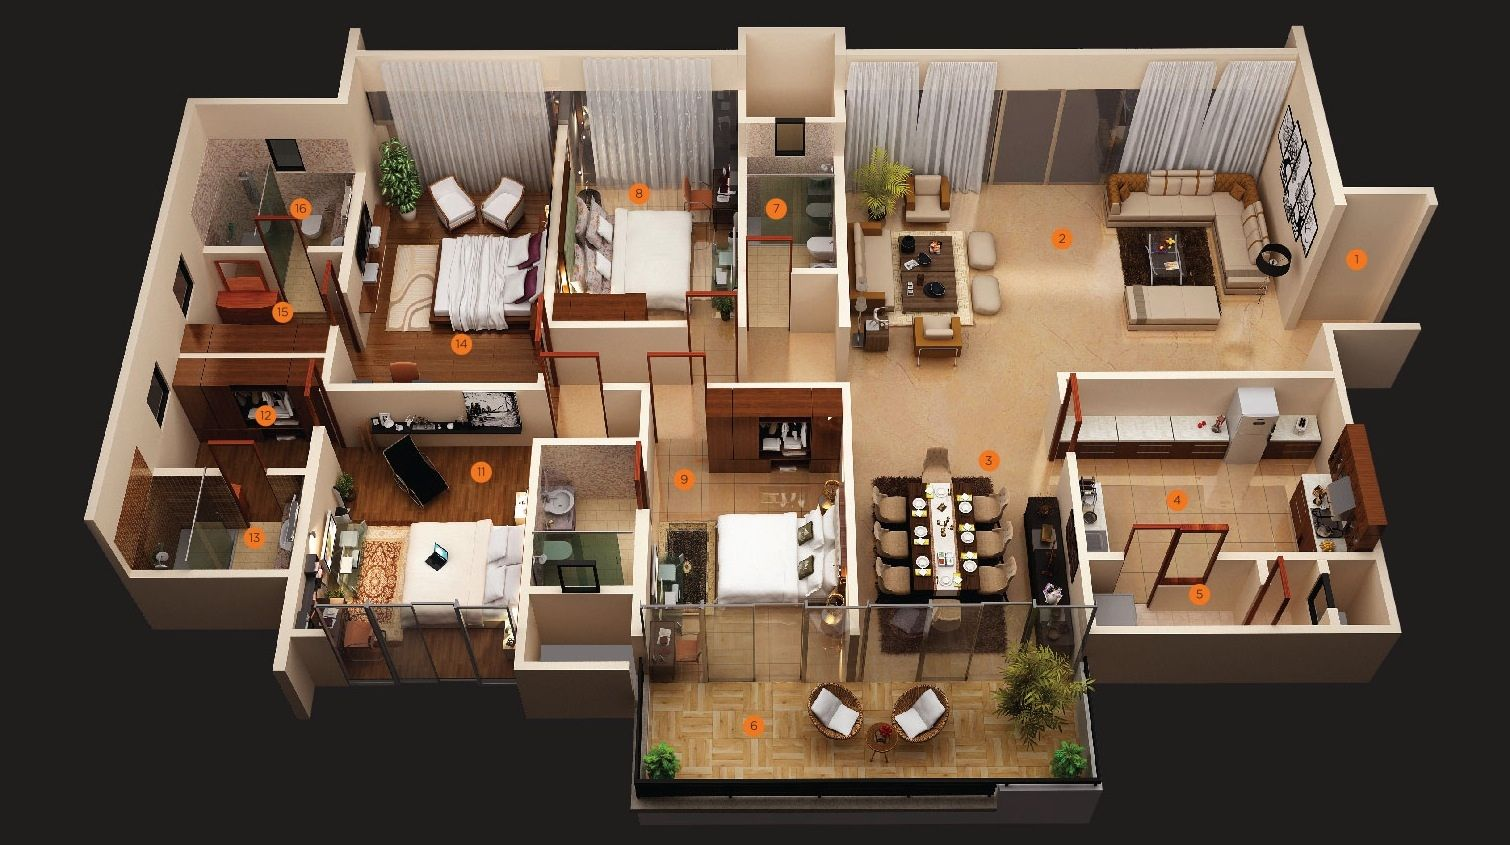 4 Bedroom Apartment House Plans Four Bedroom House Plans 4 Bedroom House Designs 3d House Plans